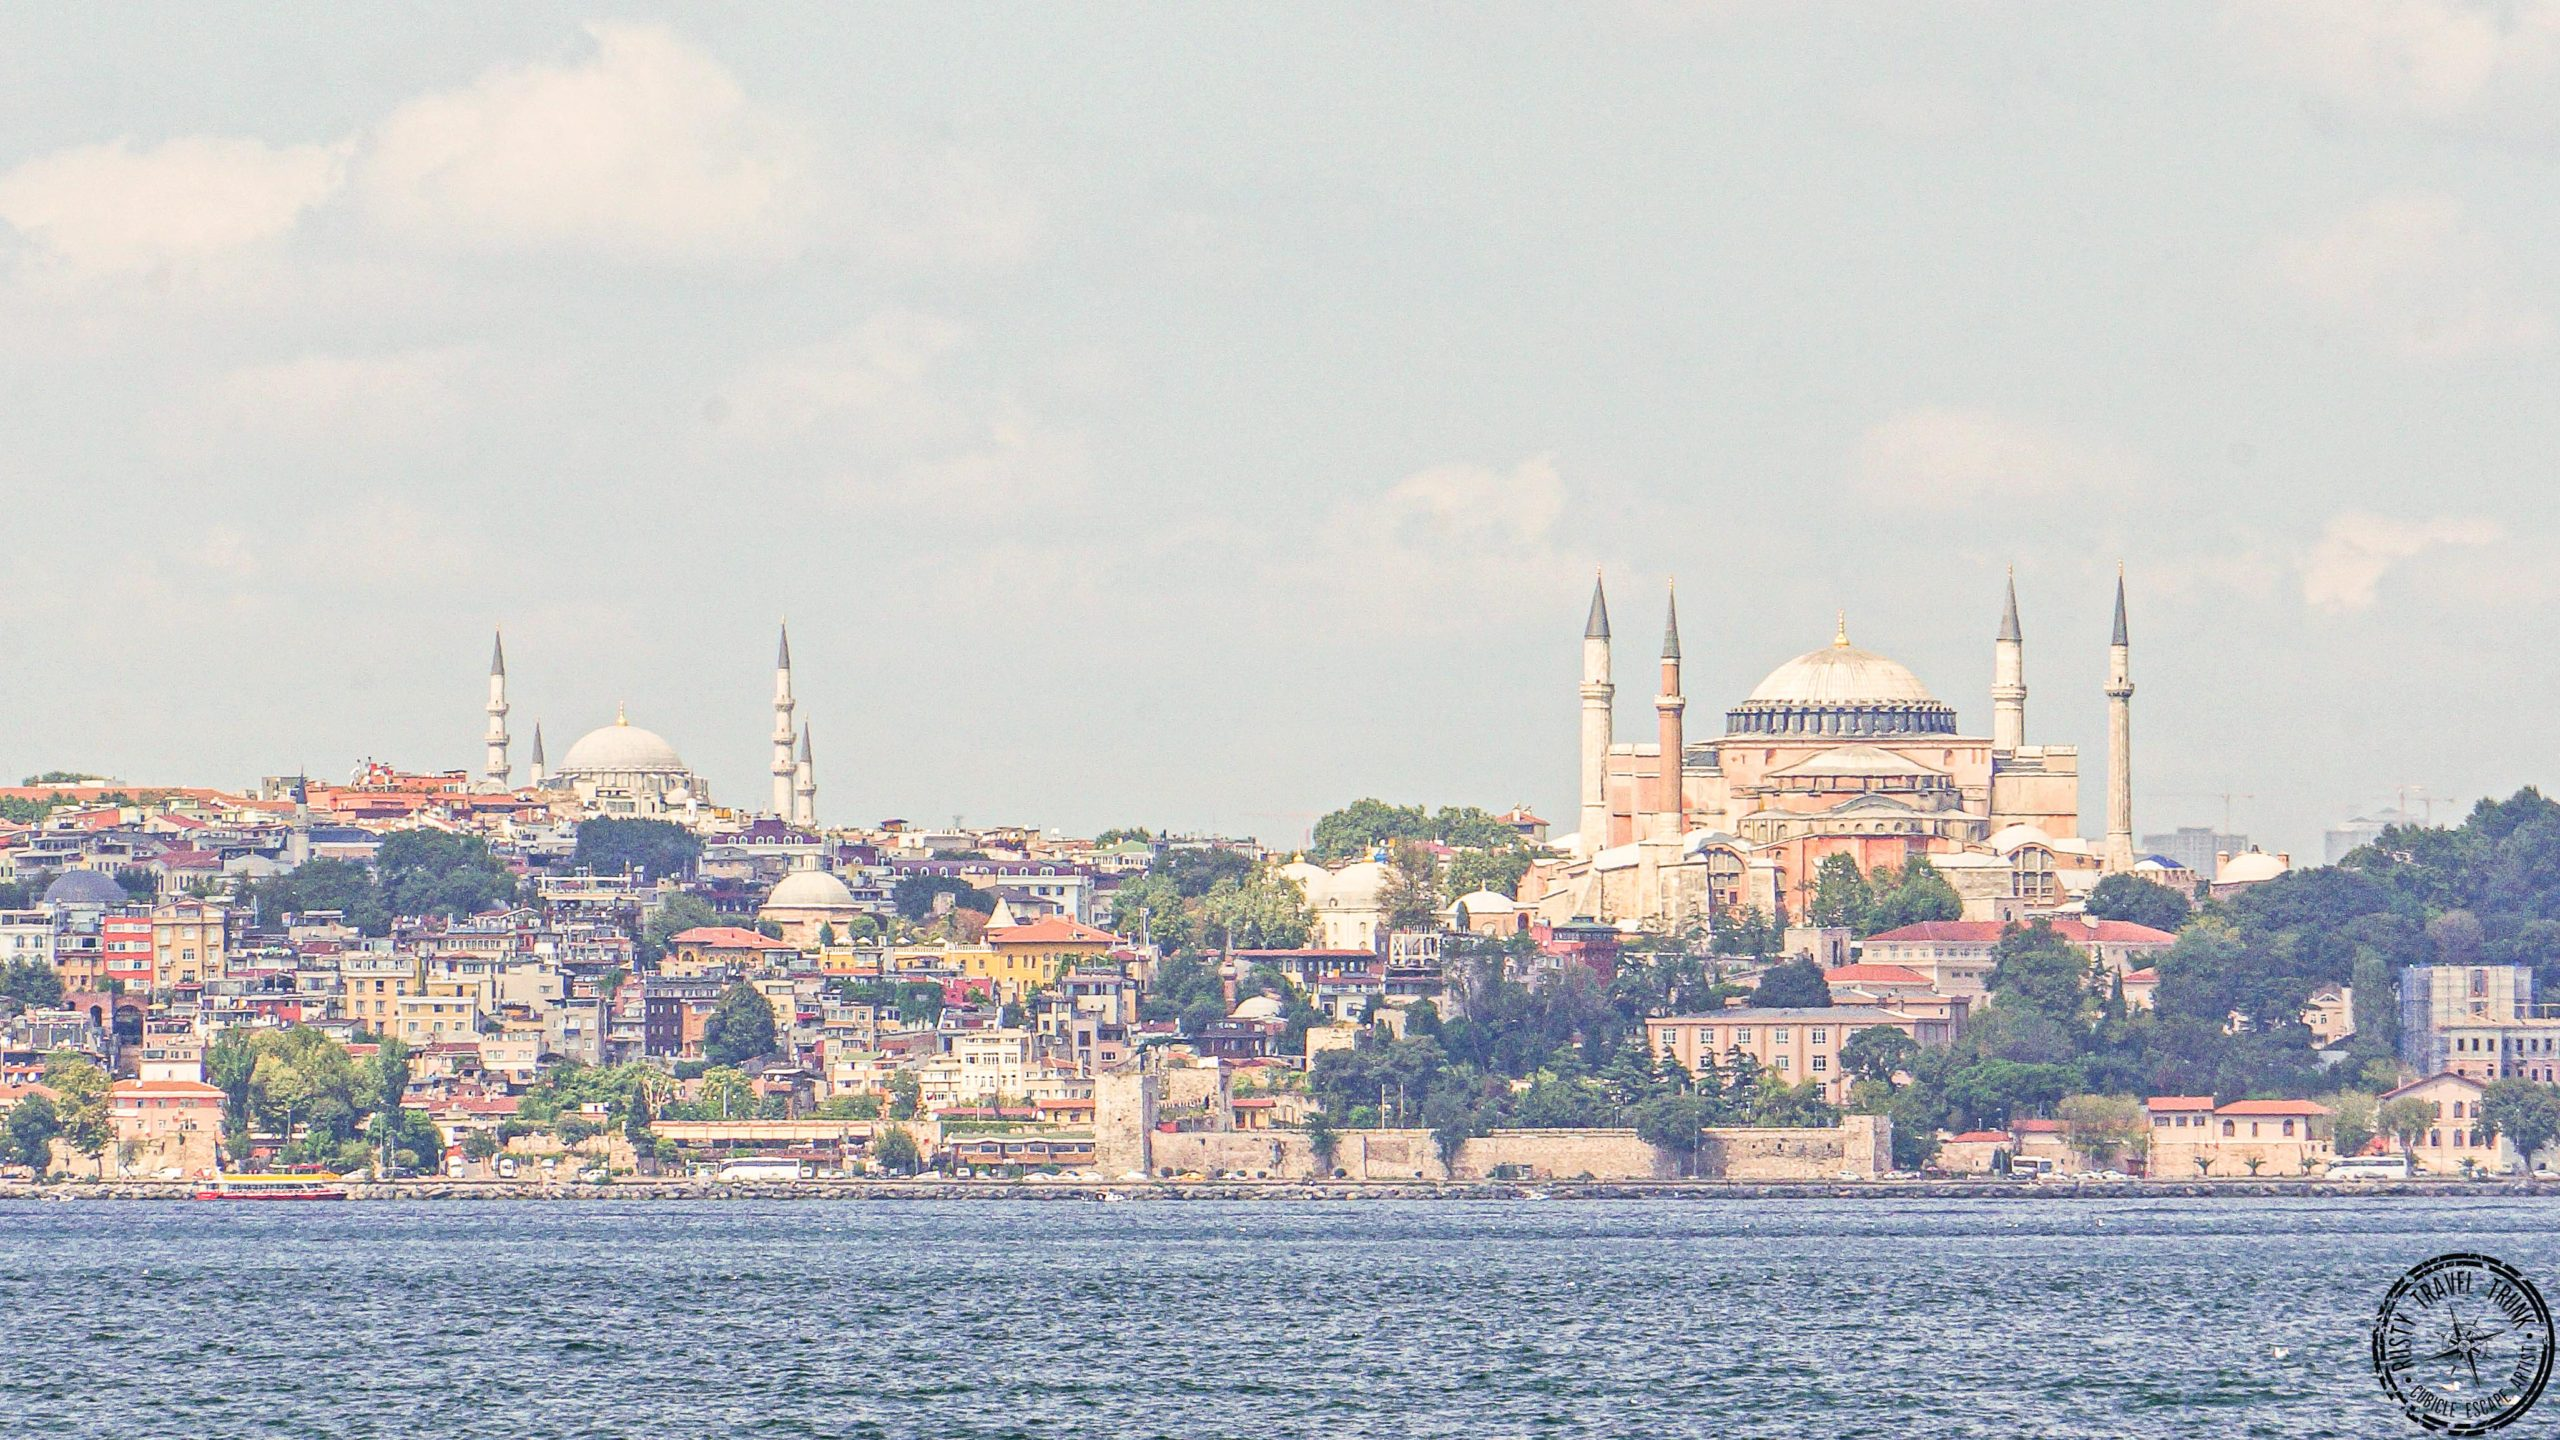 view from Istanbul Asian side - Moda